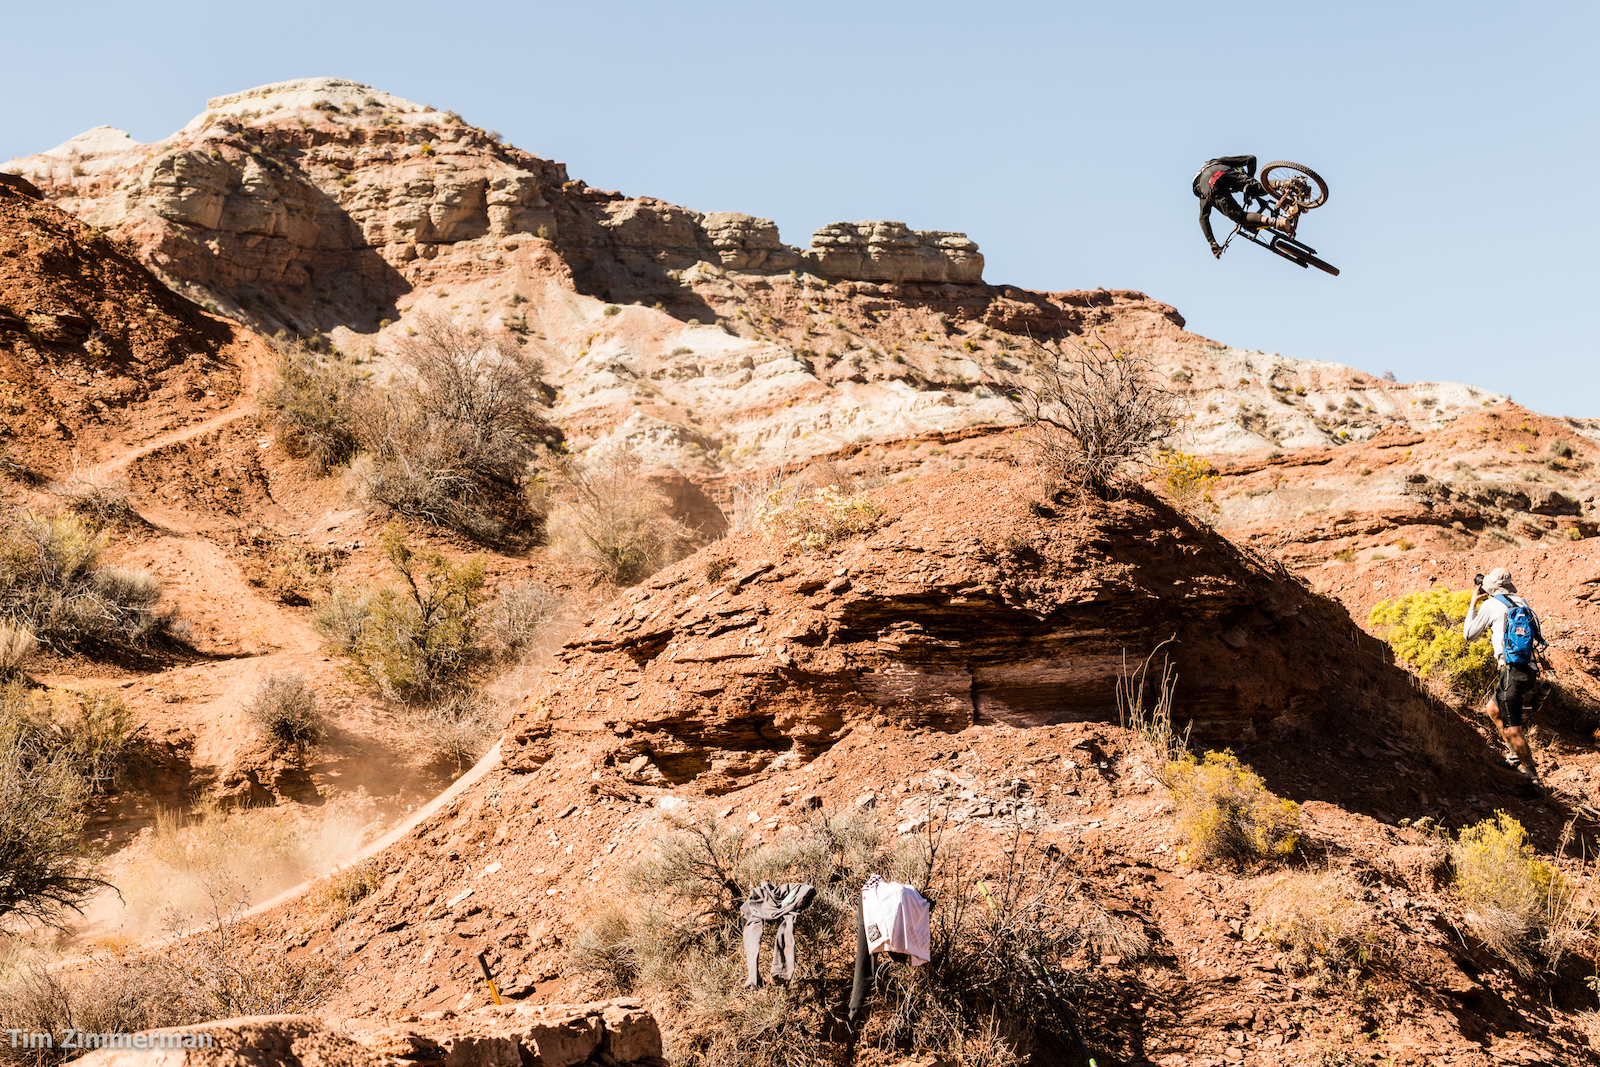 If Tyler McCaul had tied that laundry to his handlebars it would have aired out a lot quicker.